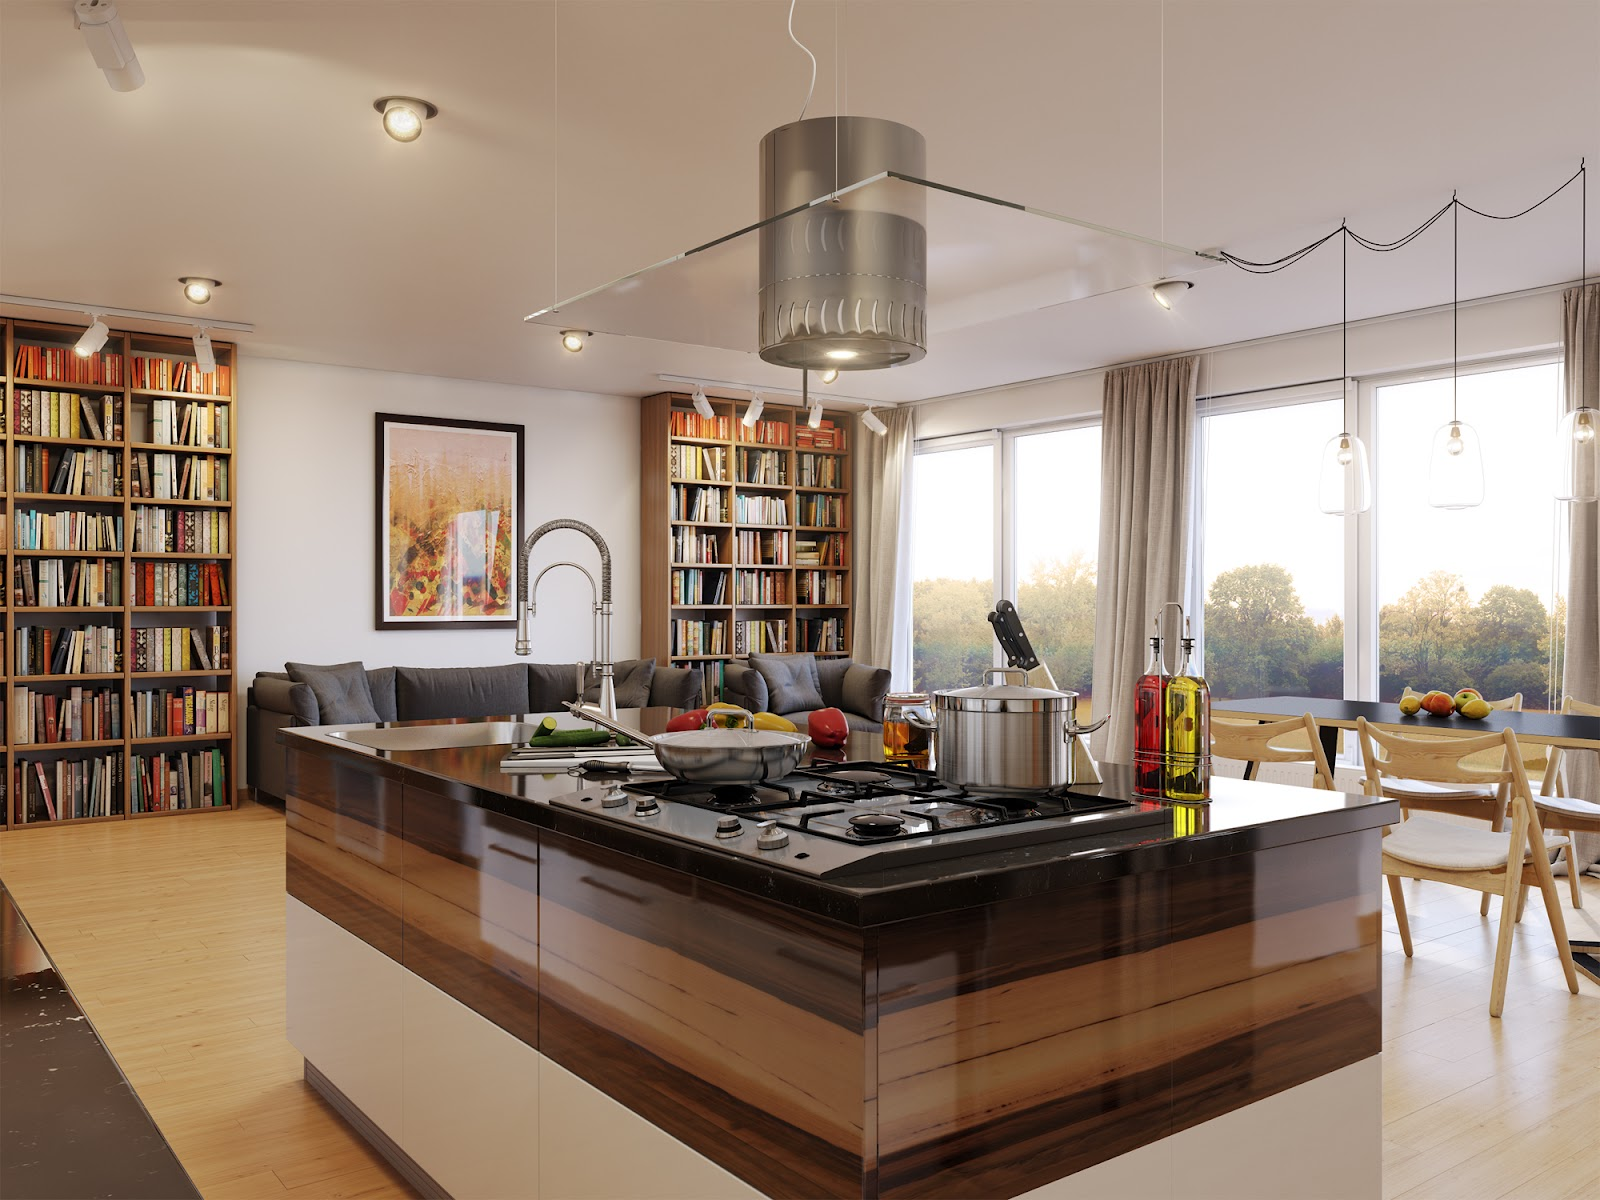 Brown Kitchen Interior Design photo - 3